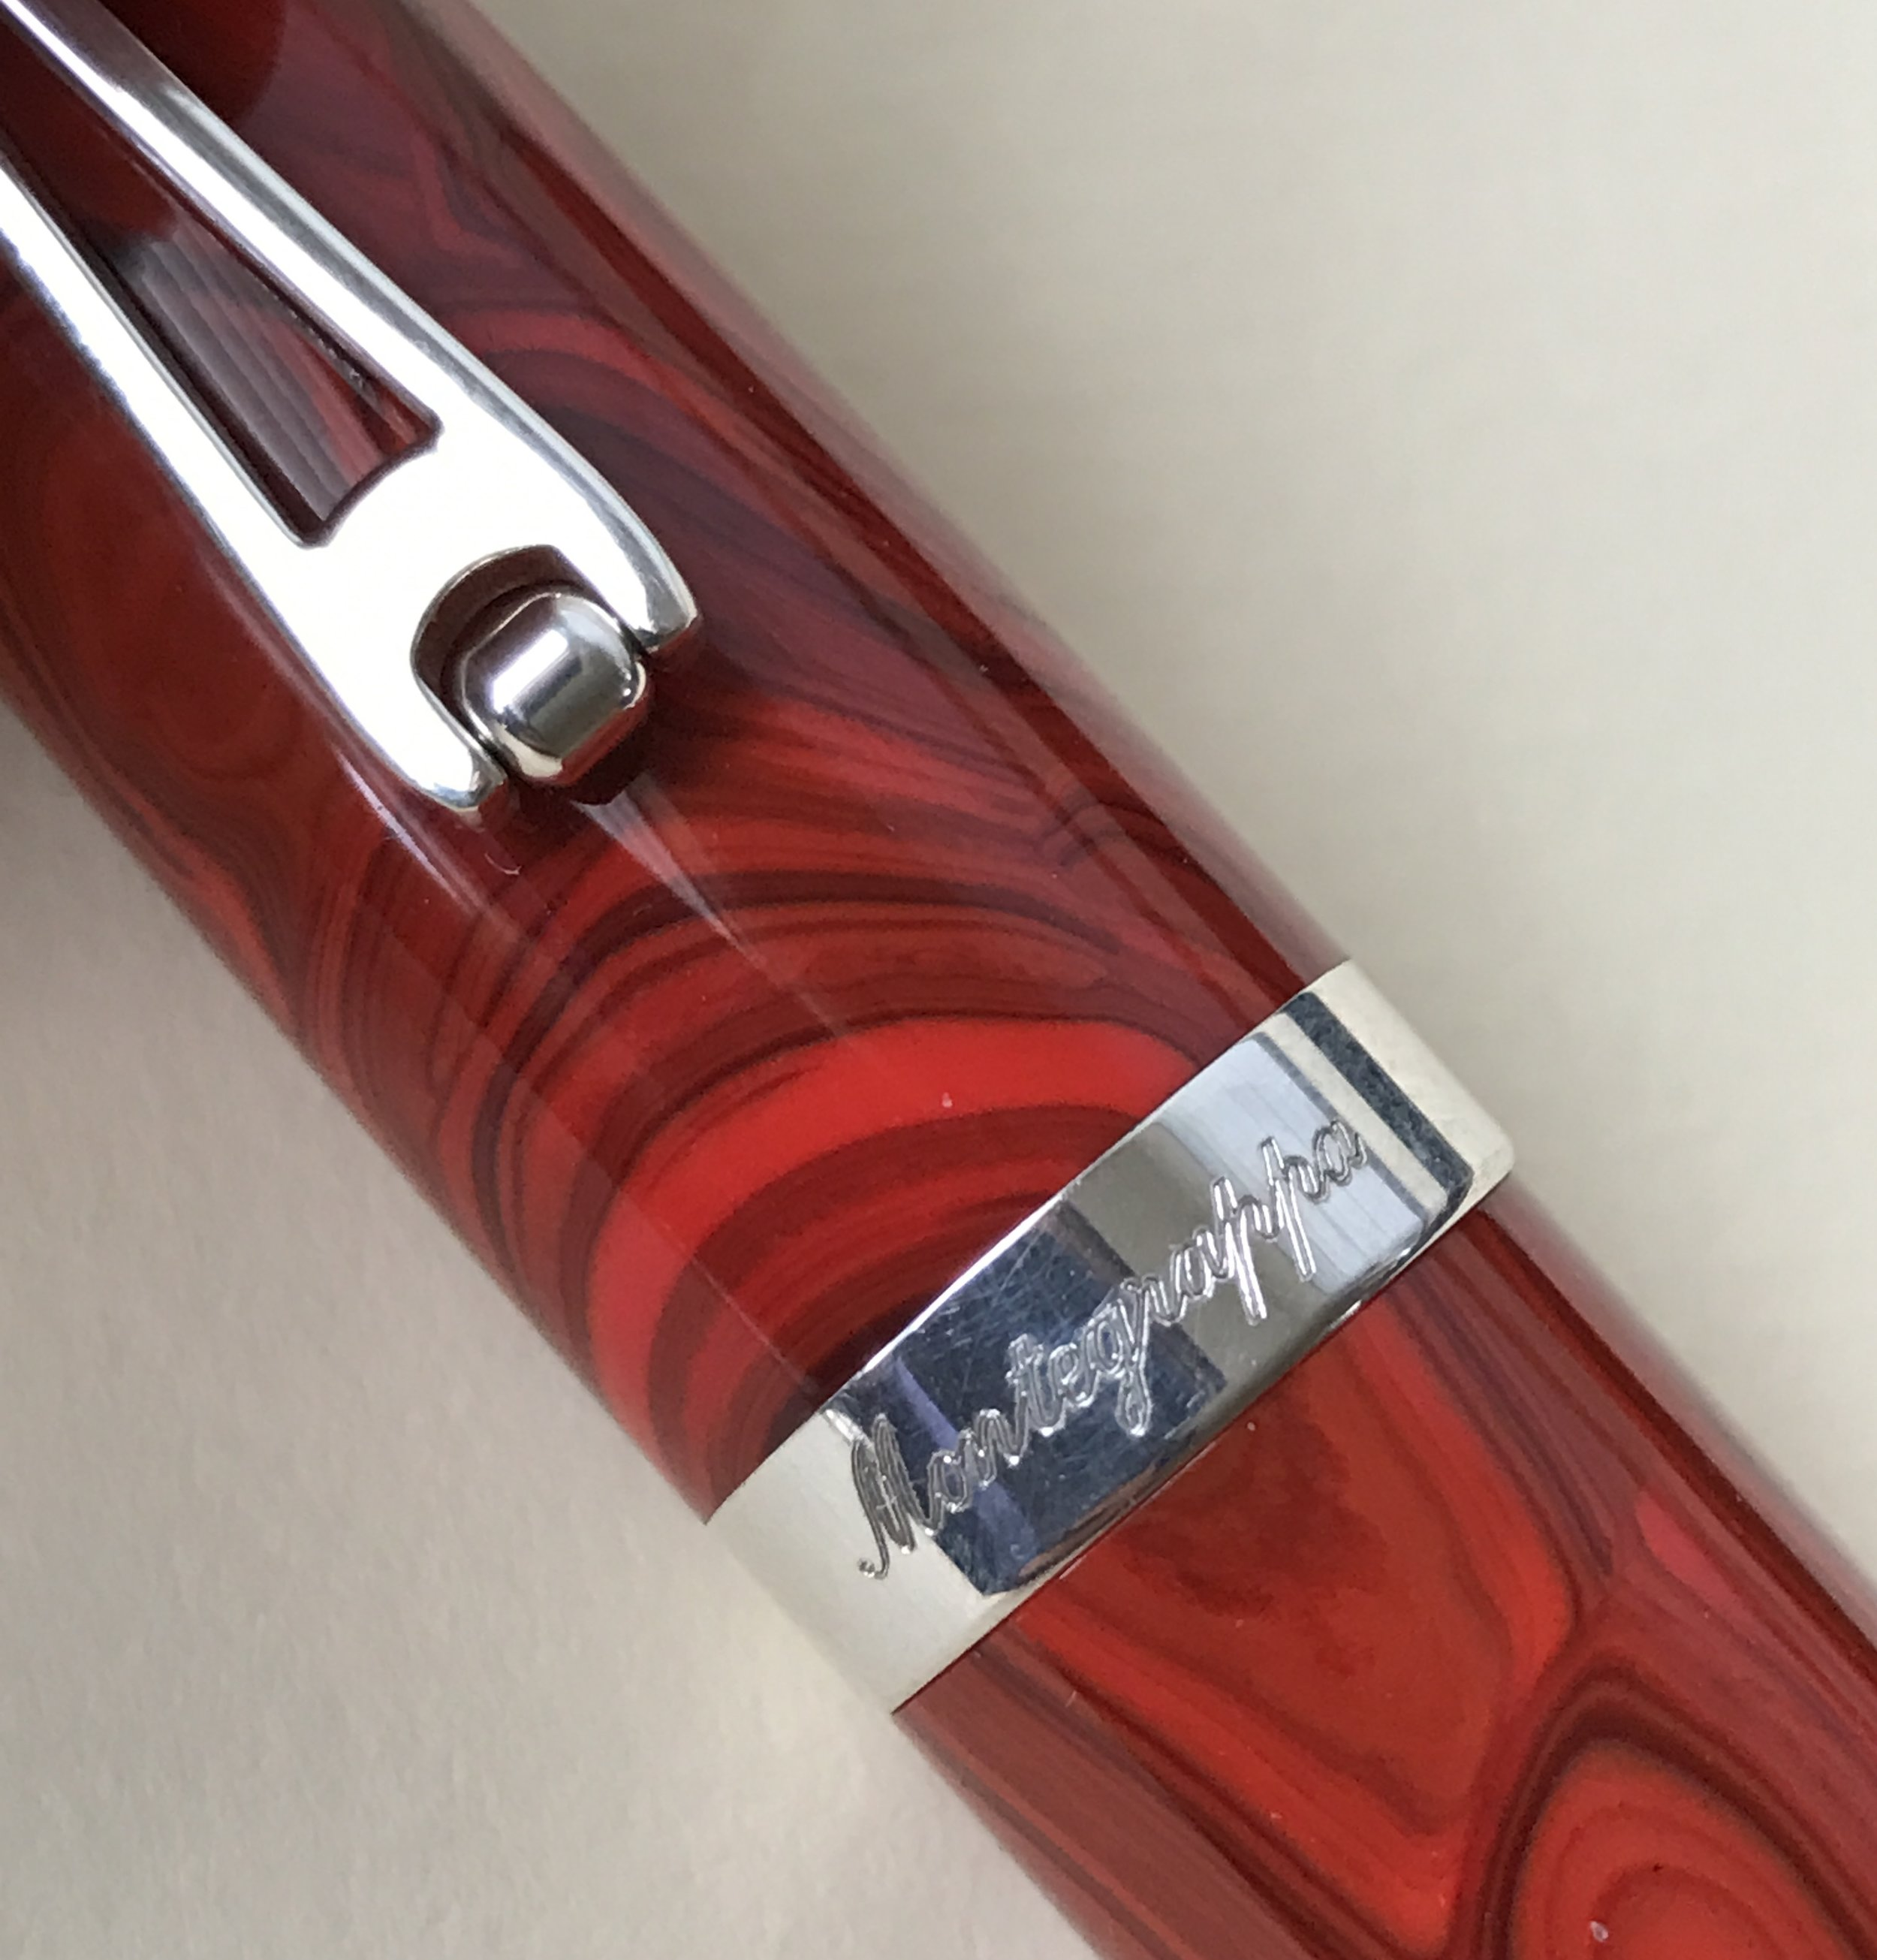 A close-up of the Passione Cinnamon celluloid, with Montegrappa's roller-clip and engraved cap band.